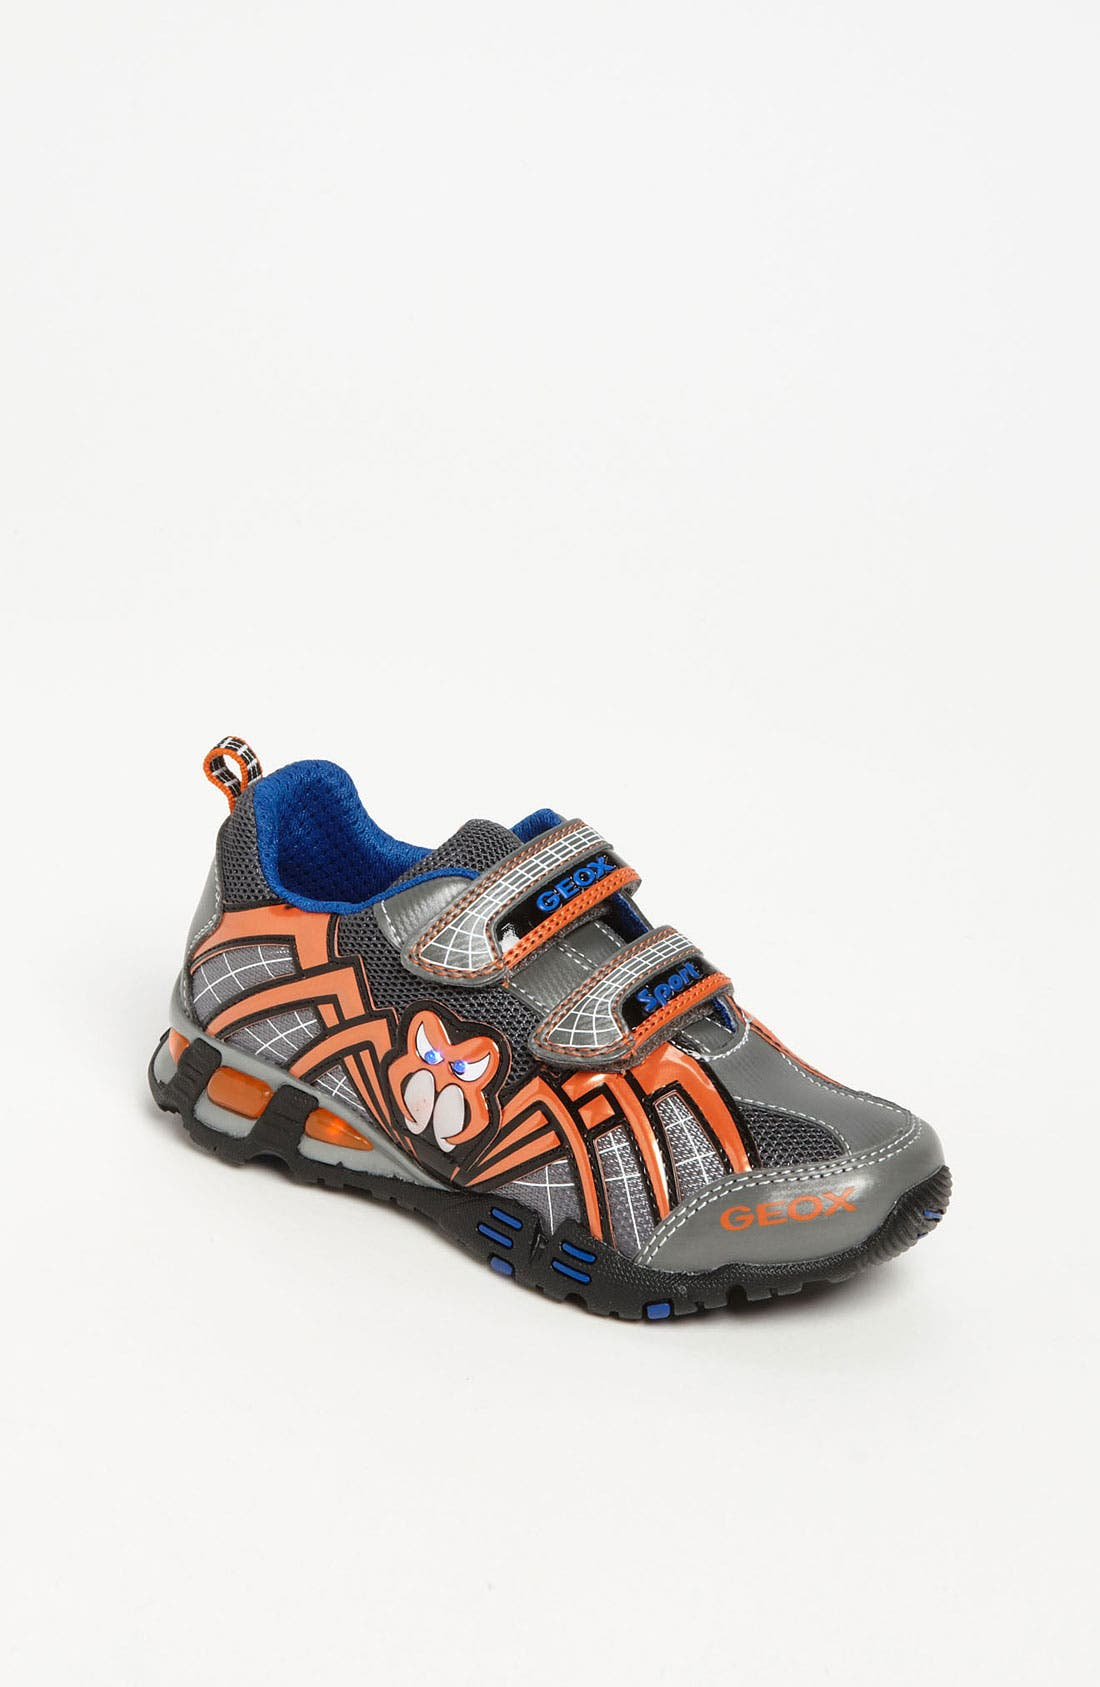 Main Image - Geox 'J Eclipse' Sneaker (Toddler, Little Kid & Big Kid)